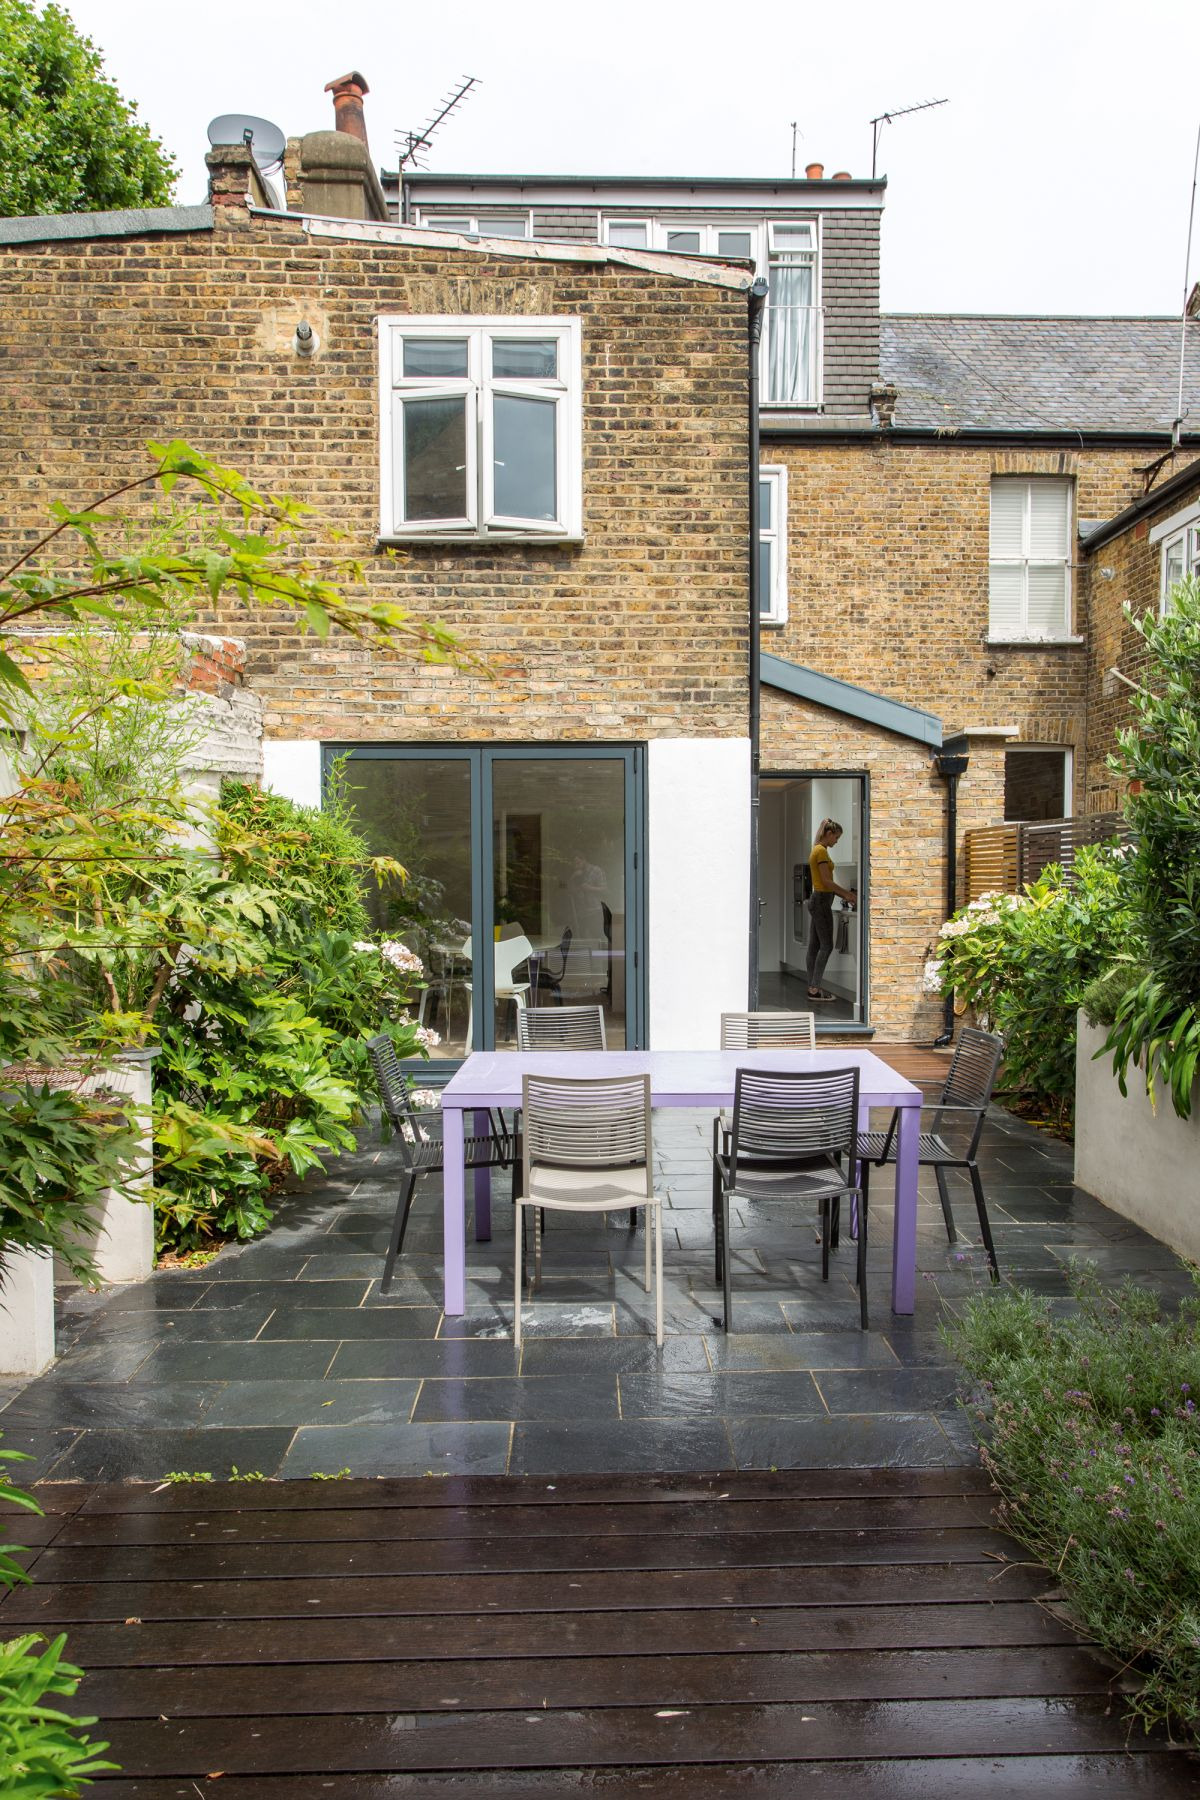 Can You Build A House for 50k Lovely Extending for Under £50 000 12 top Tips for Your Home